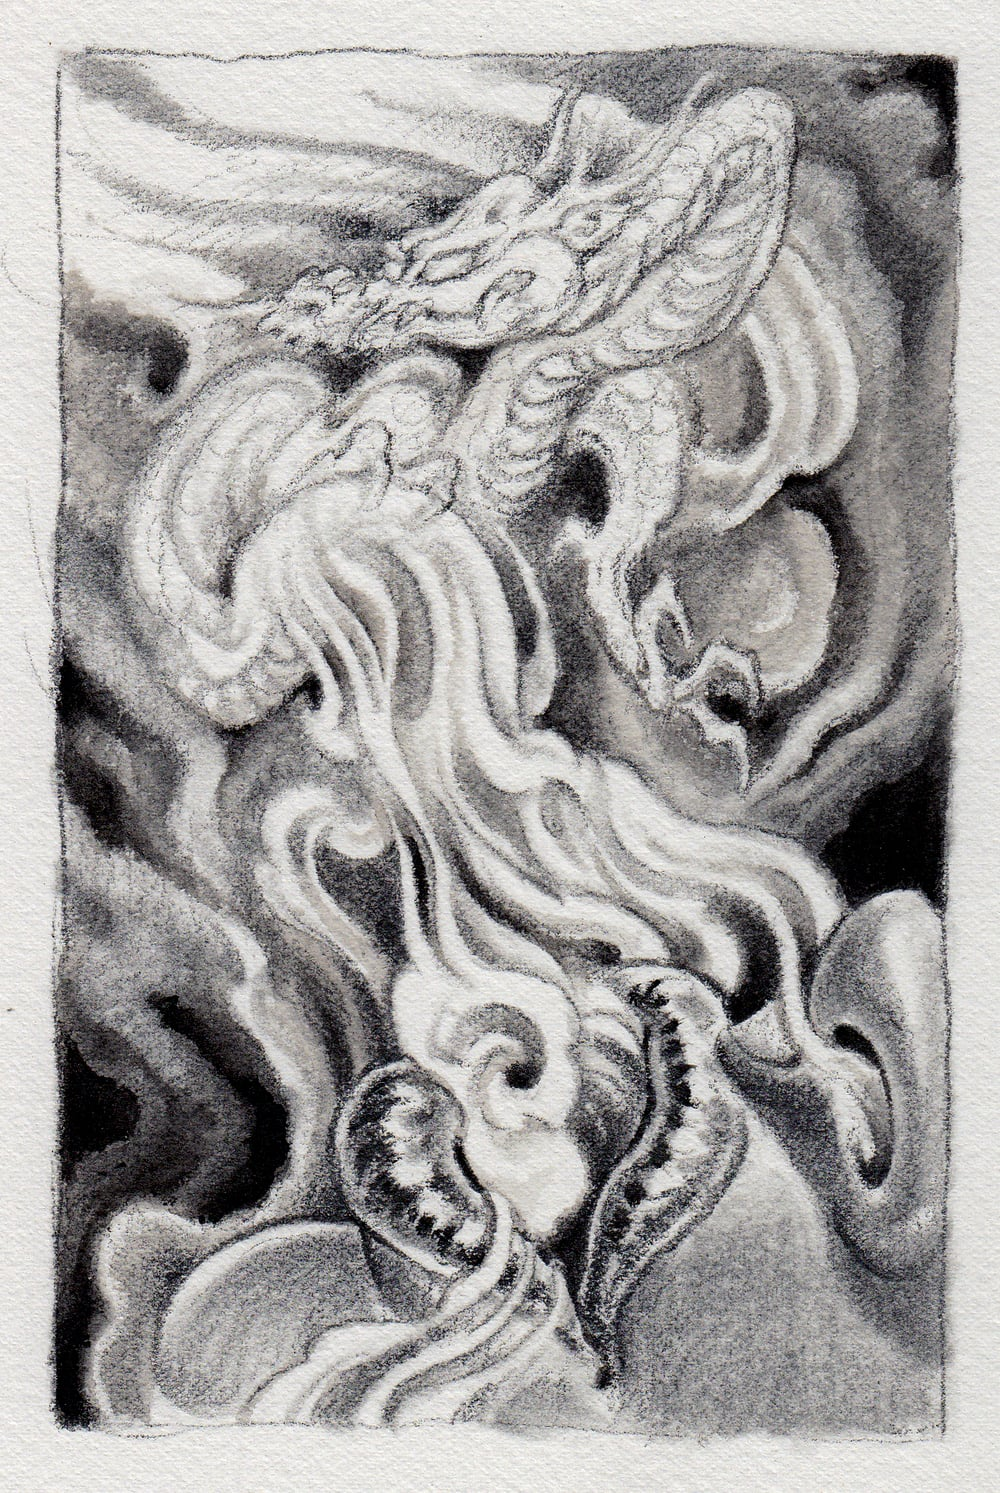 "Exhale . 2012 - graphite and watercolor on paper. 4"" x 6""."